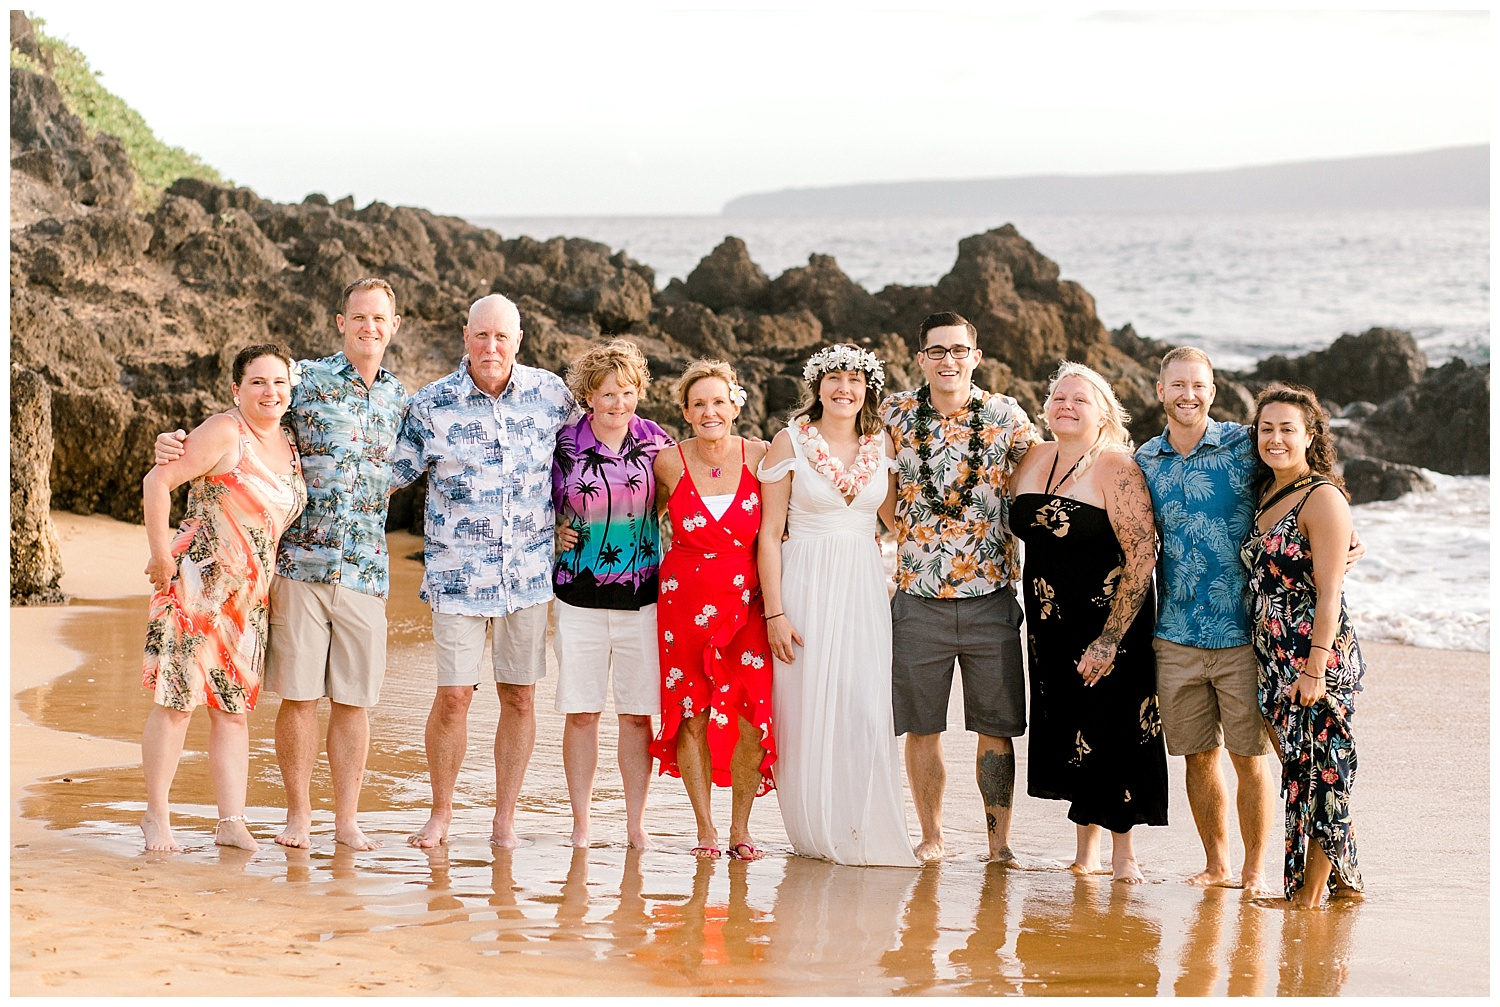 Maui-Elopement-Photography-Paipu-Beach-Maui_0010.jpg